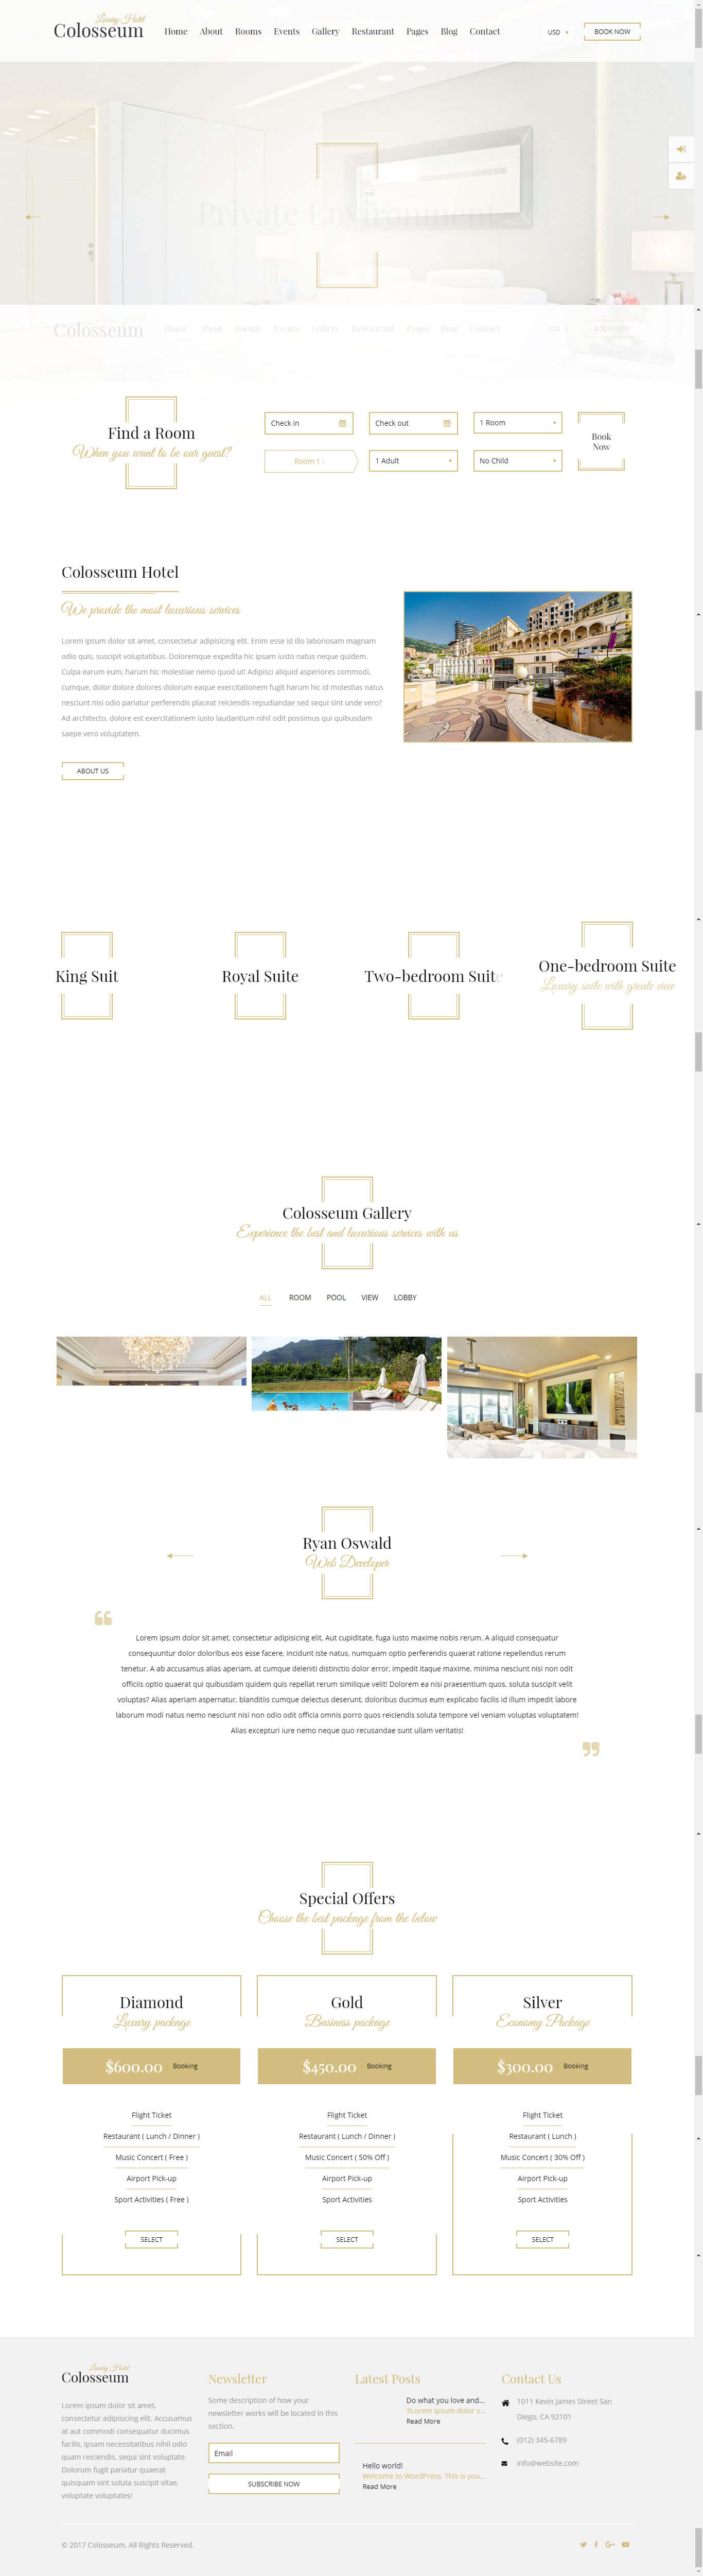 Thiết kế website resort anh minh